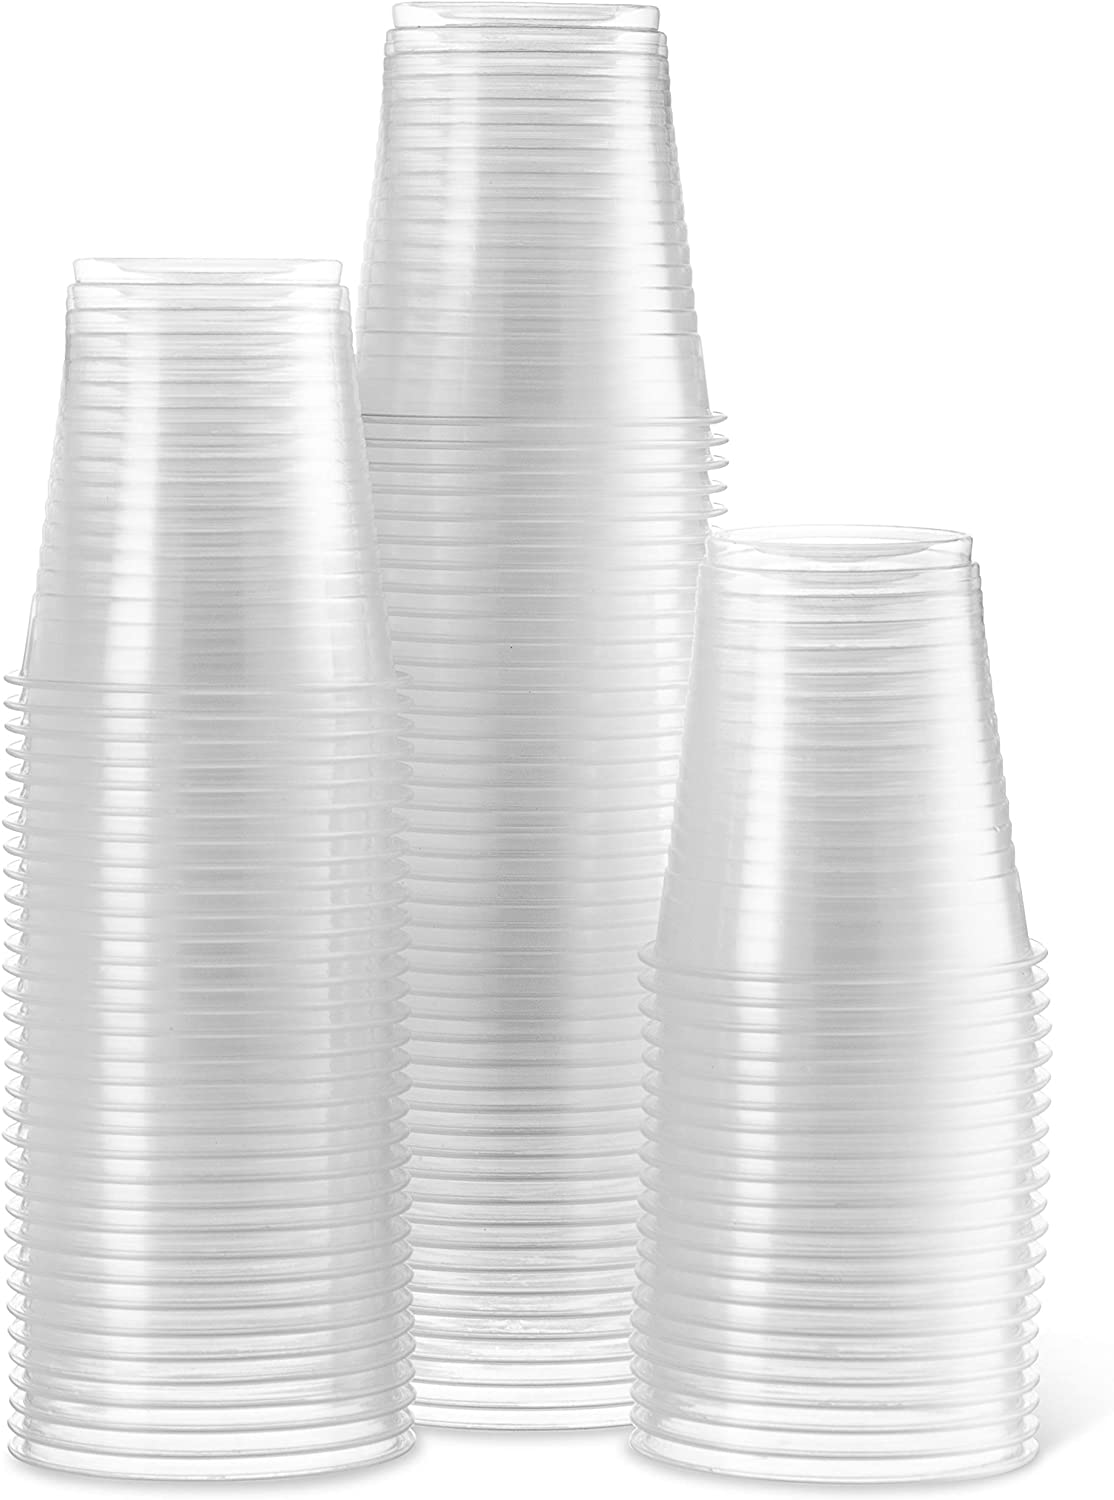 [2400 Count - 5 Oz Cups] Settings Clear Disposable Plastic Drinking Cups Great For Juice, Water, Soda, Beer, Use At Party, Home, Office, Picnic, BBQ, Or Event, 1 Case